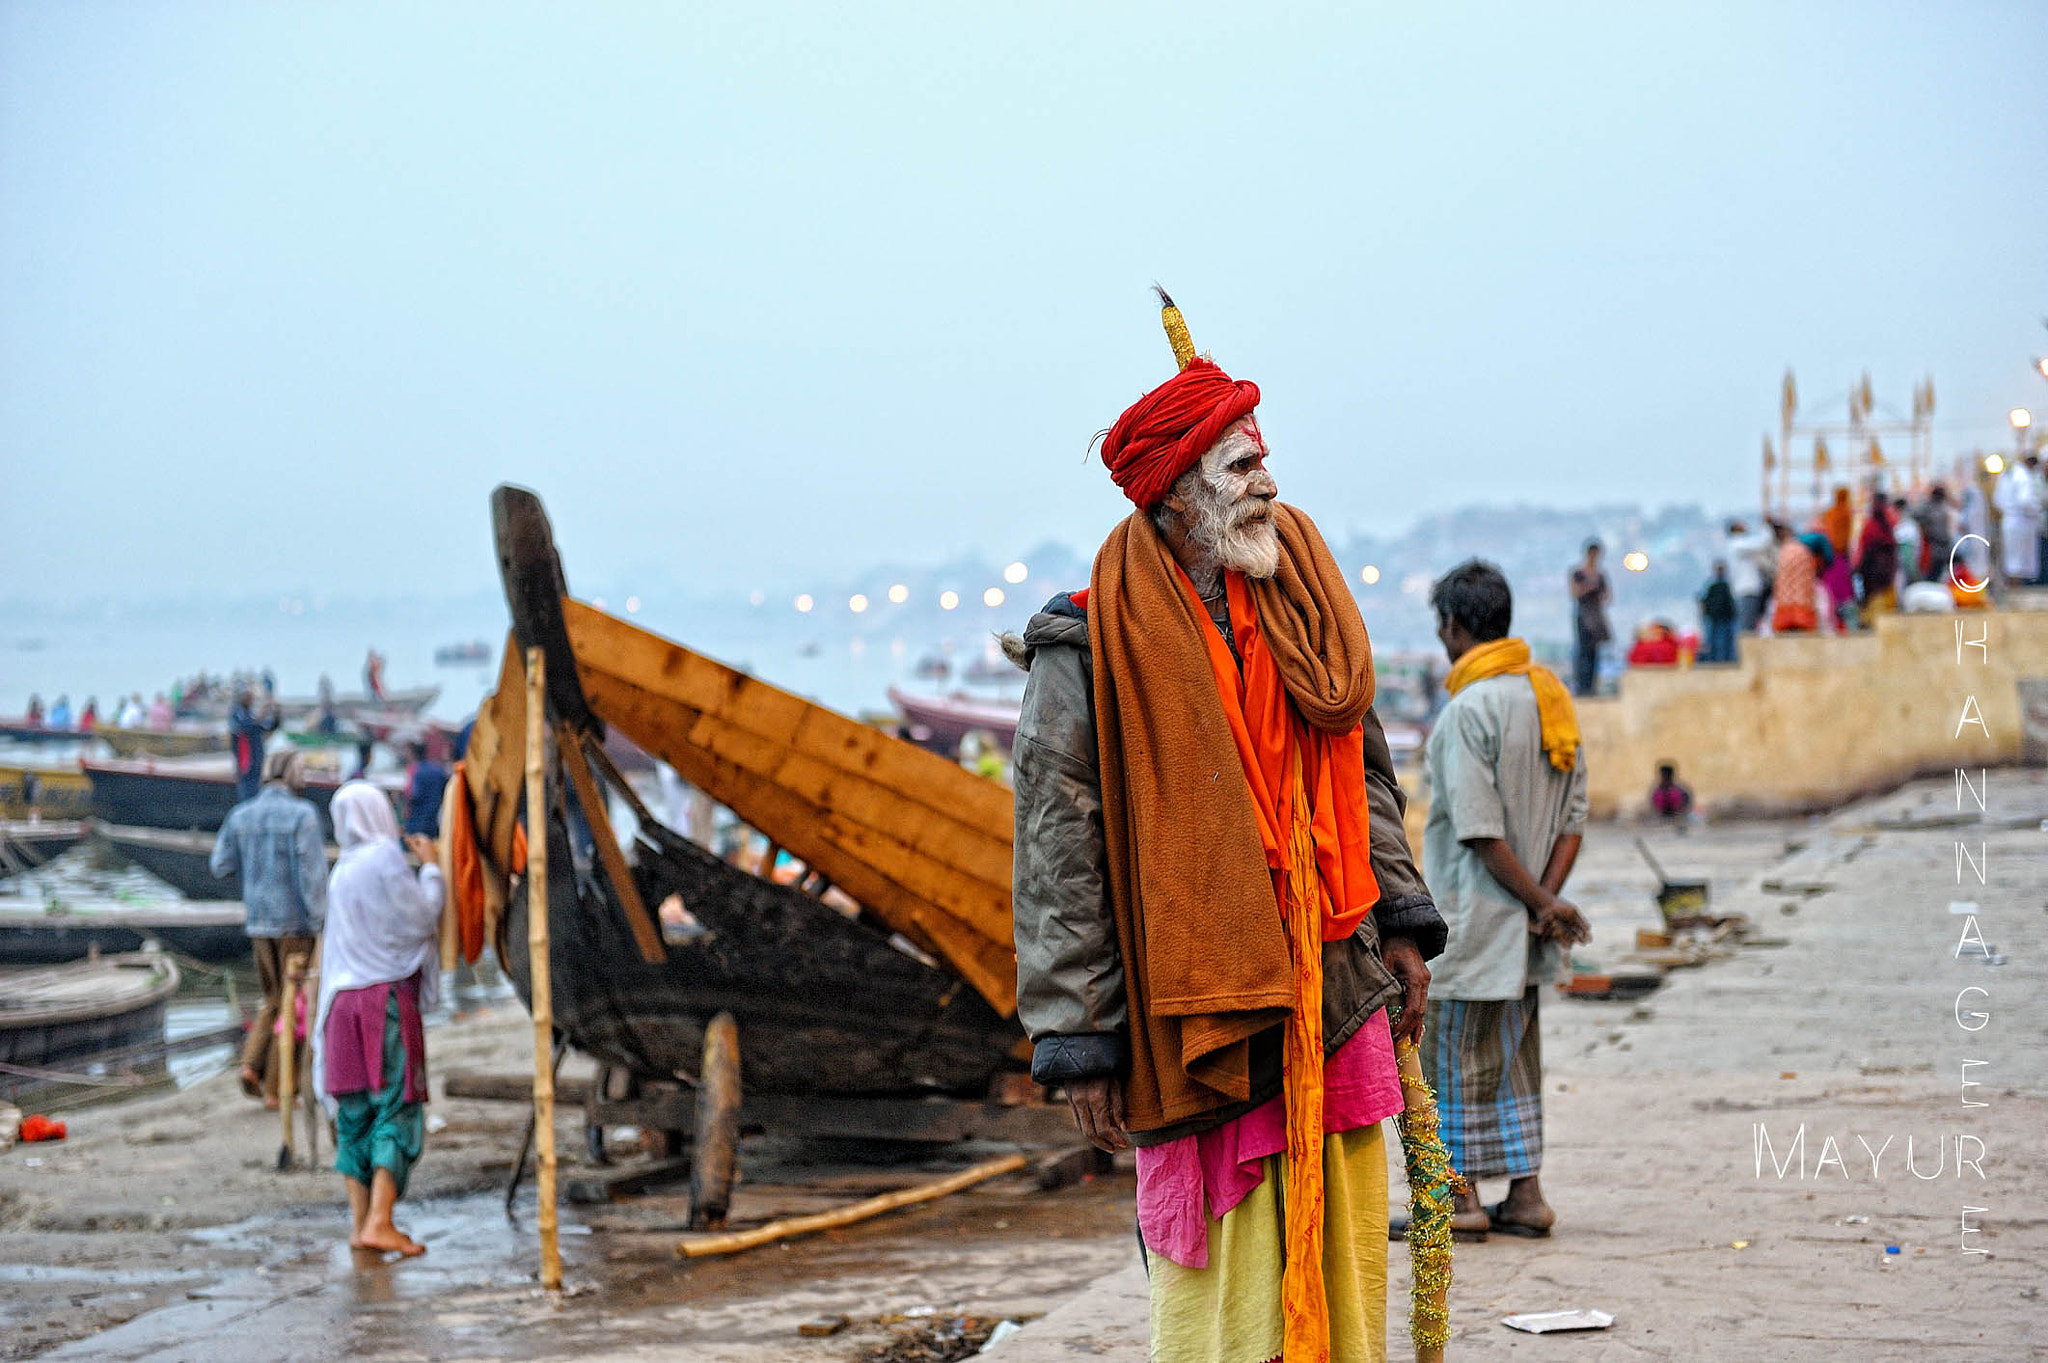 Photograph On the Banks of Ganga by Mayur Channagere on 500px